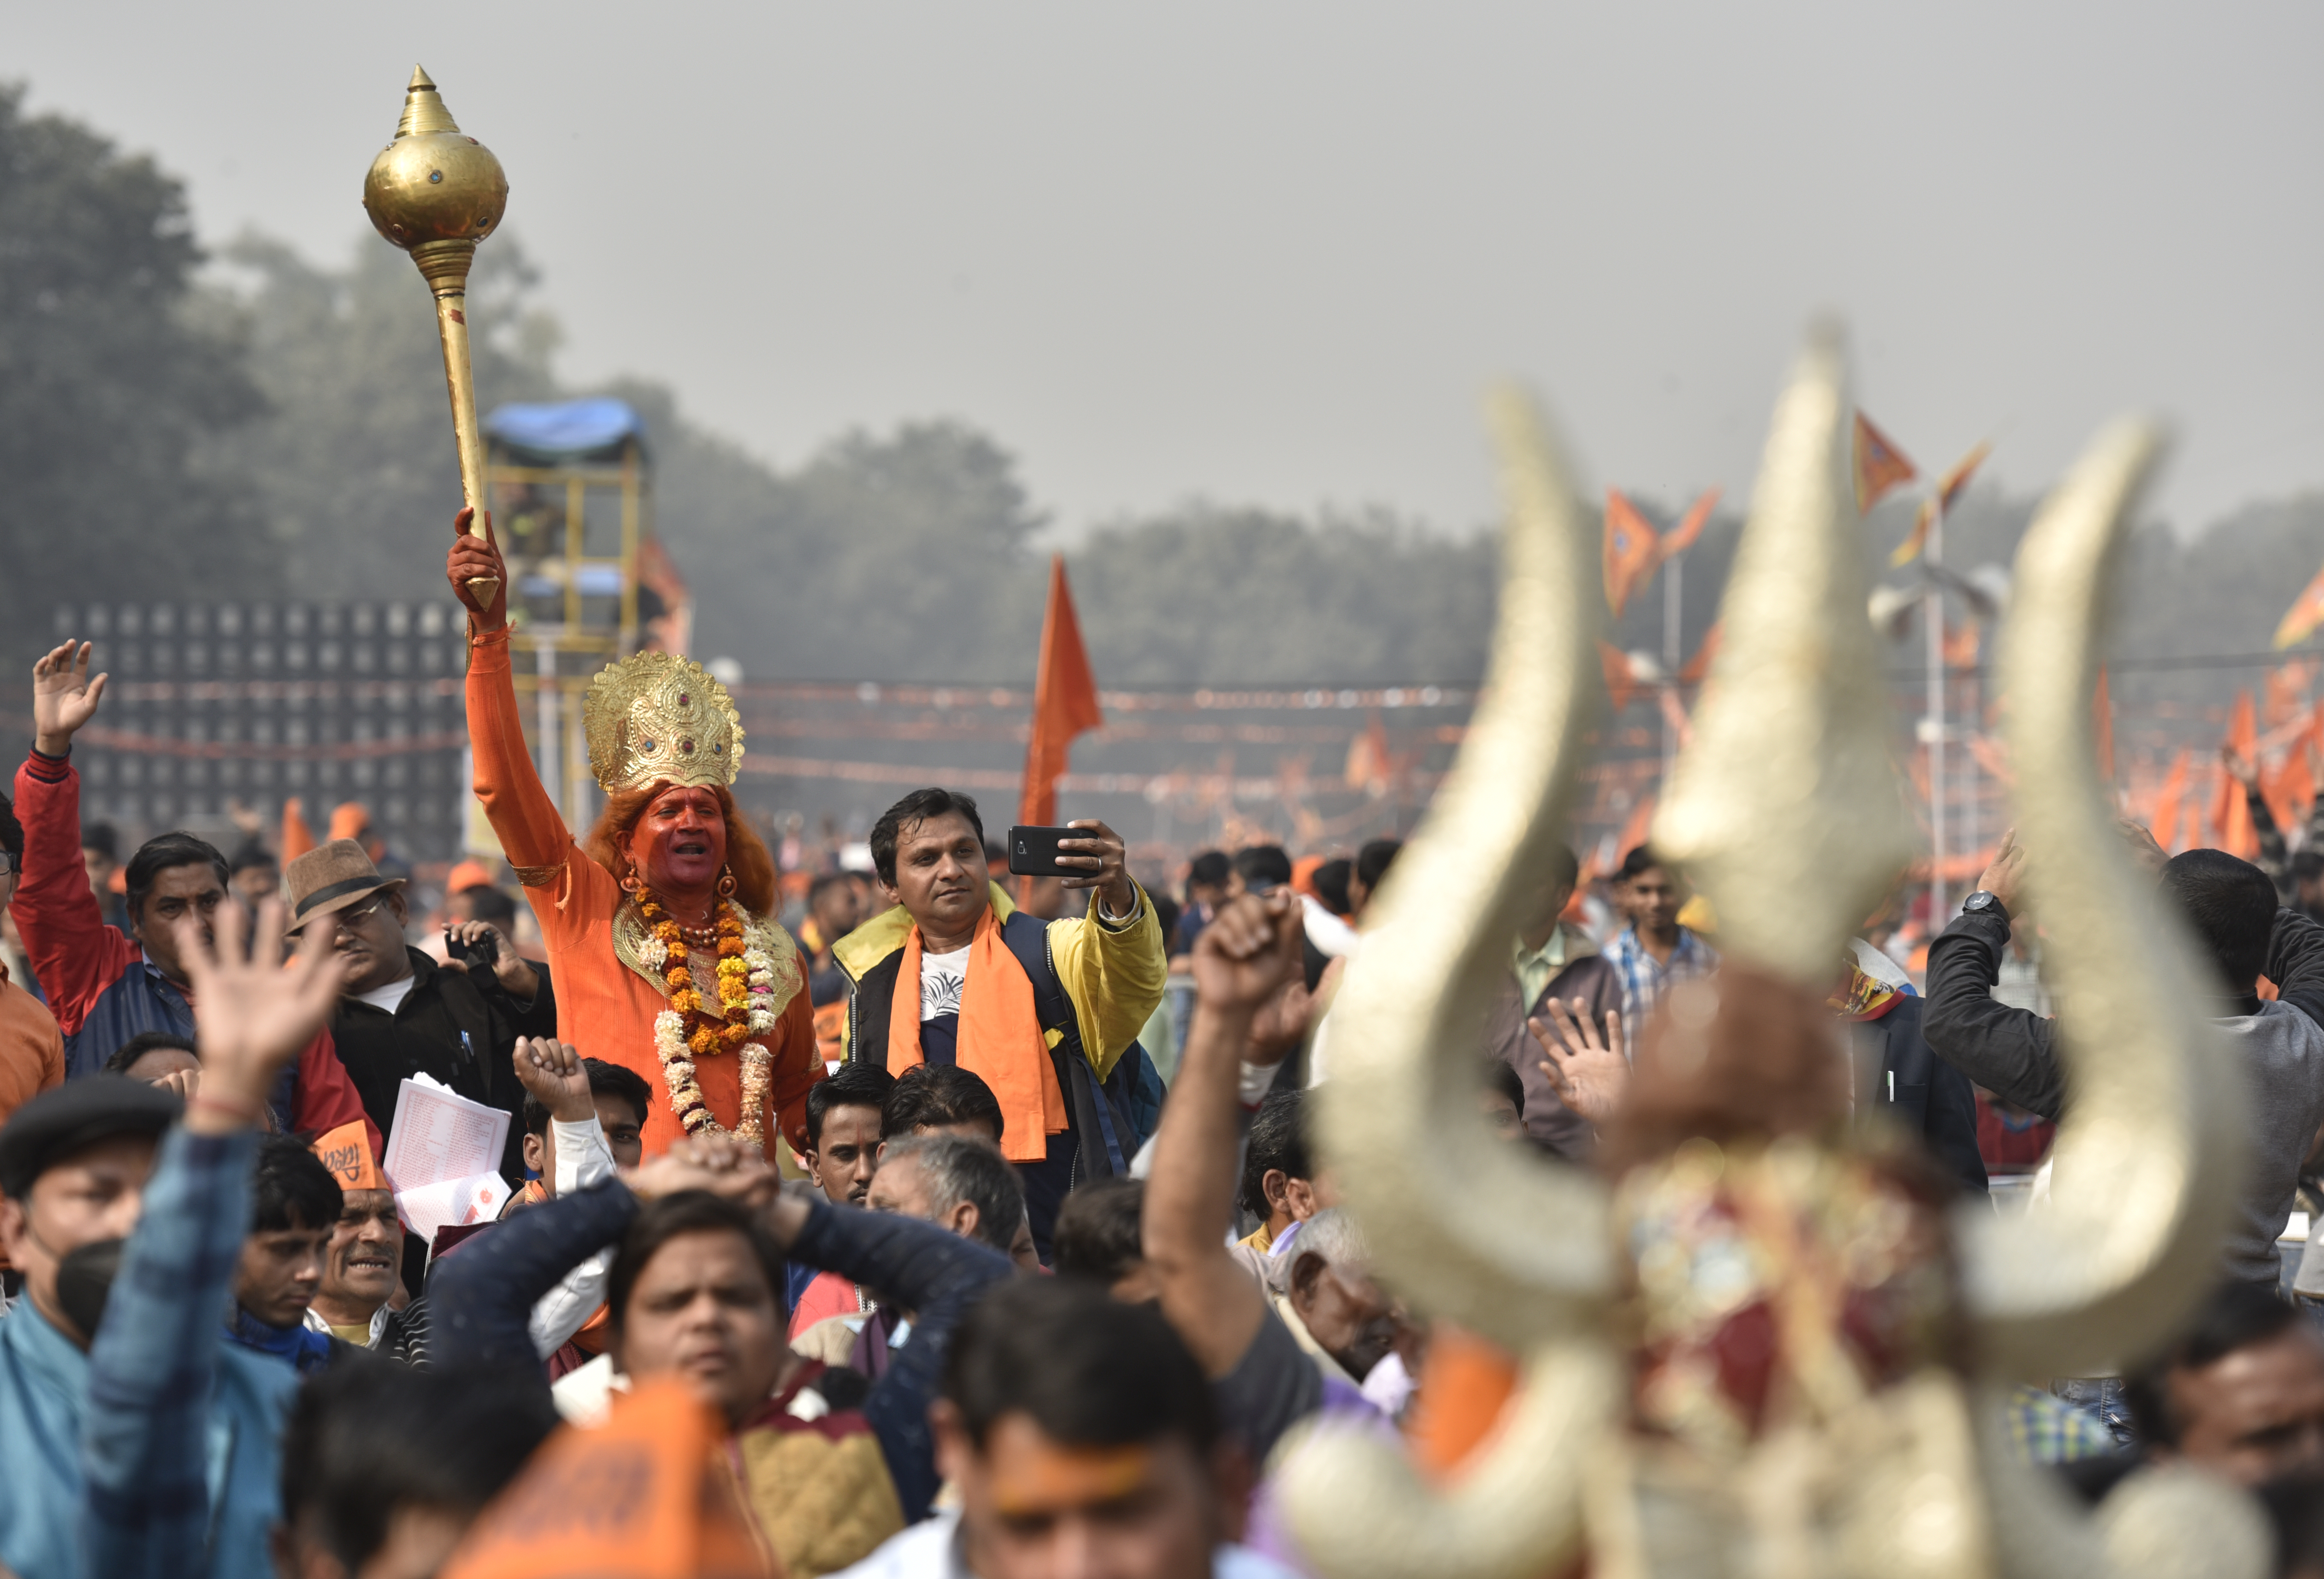 Thousands of Hindus gather in support of the construction of a Ram Temple in Ayodhya, on December 9, 2018 in New Delhi, India.